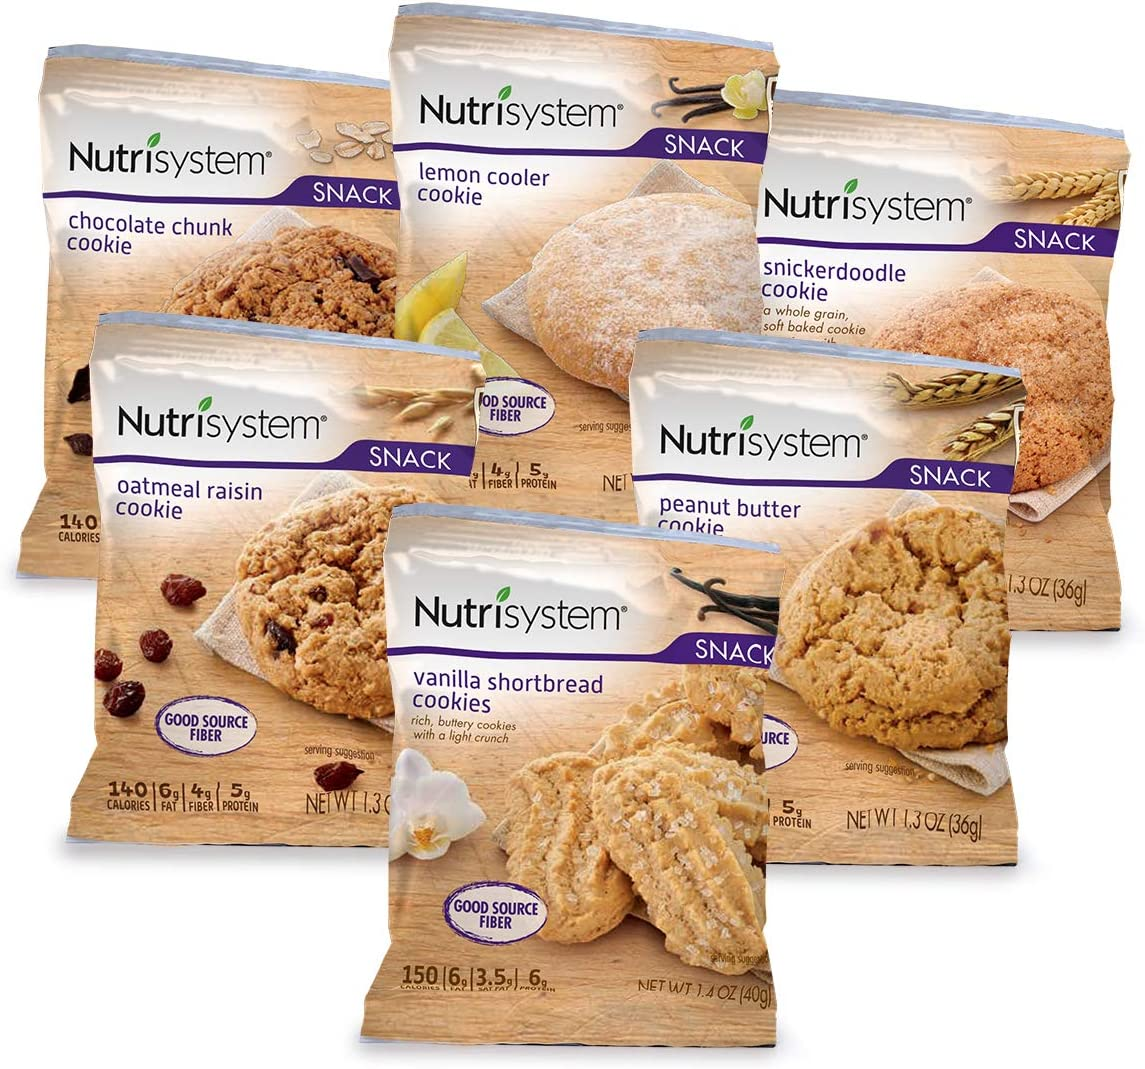 Nutrisystem® Cookie Variety Pack, 24ct, Guilt-Free Snacks to Support Healthy Weight Loss